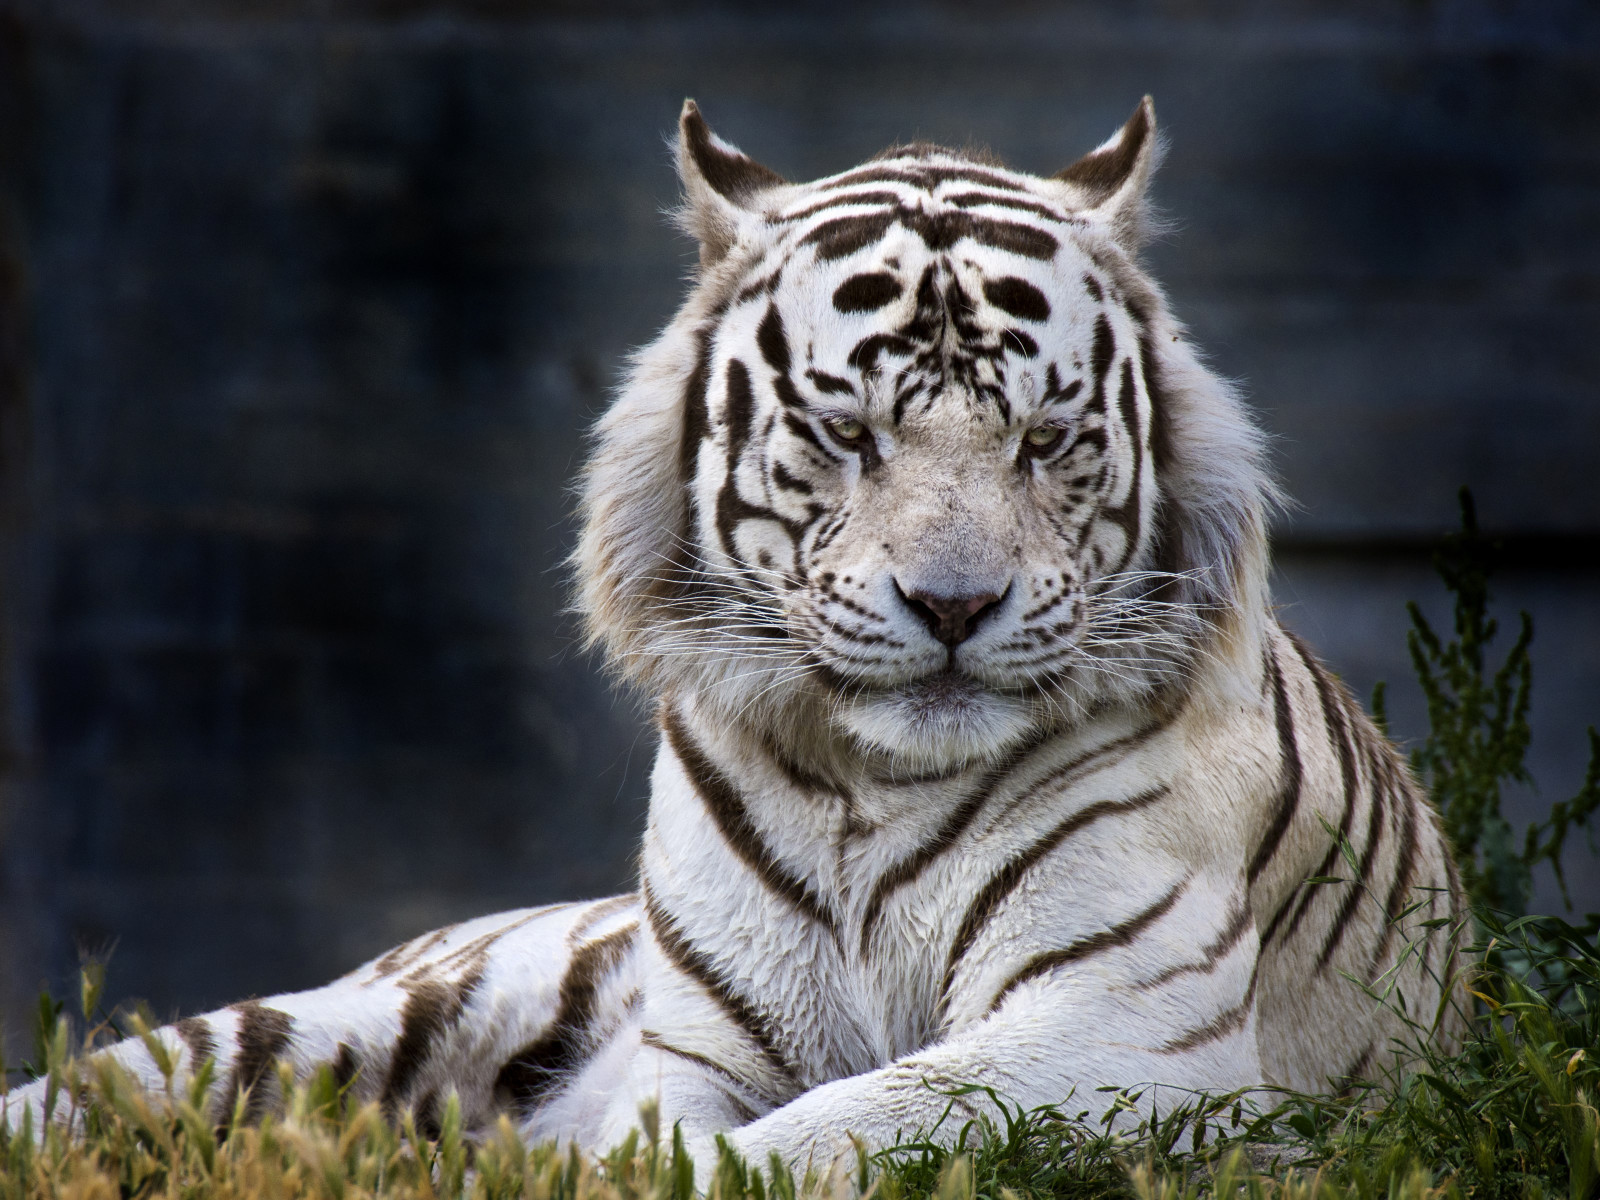 The white tiger from Madrid Zoo wallpaper 1600x1200